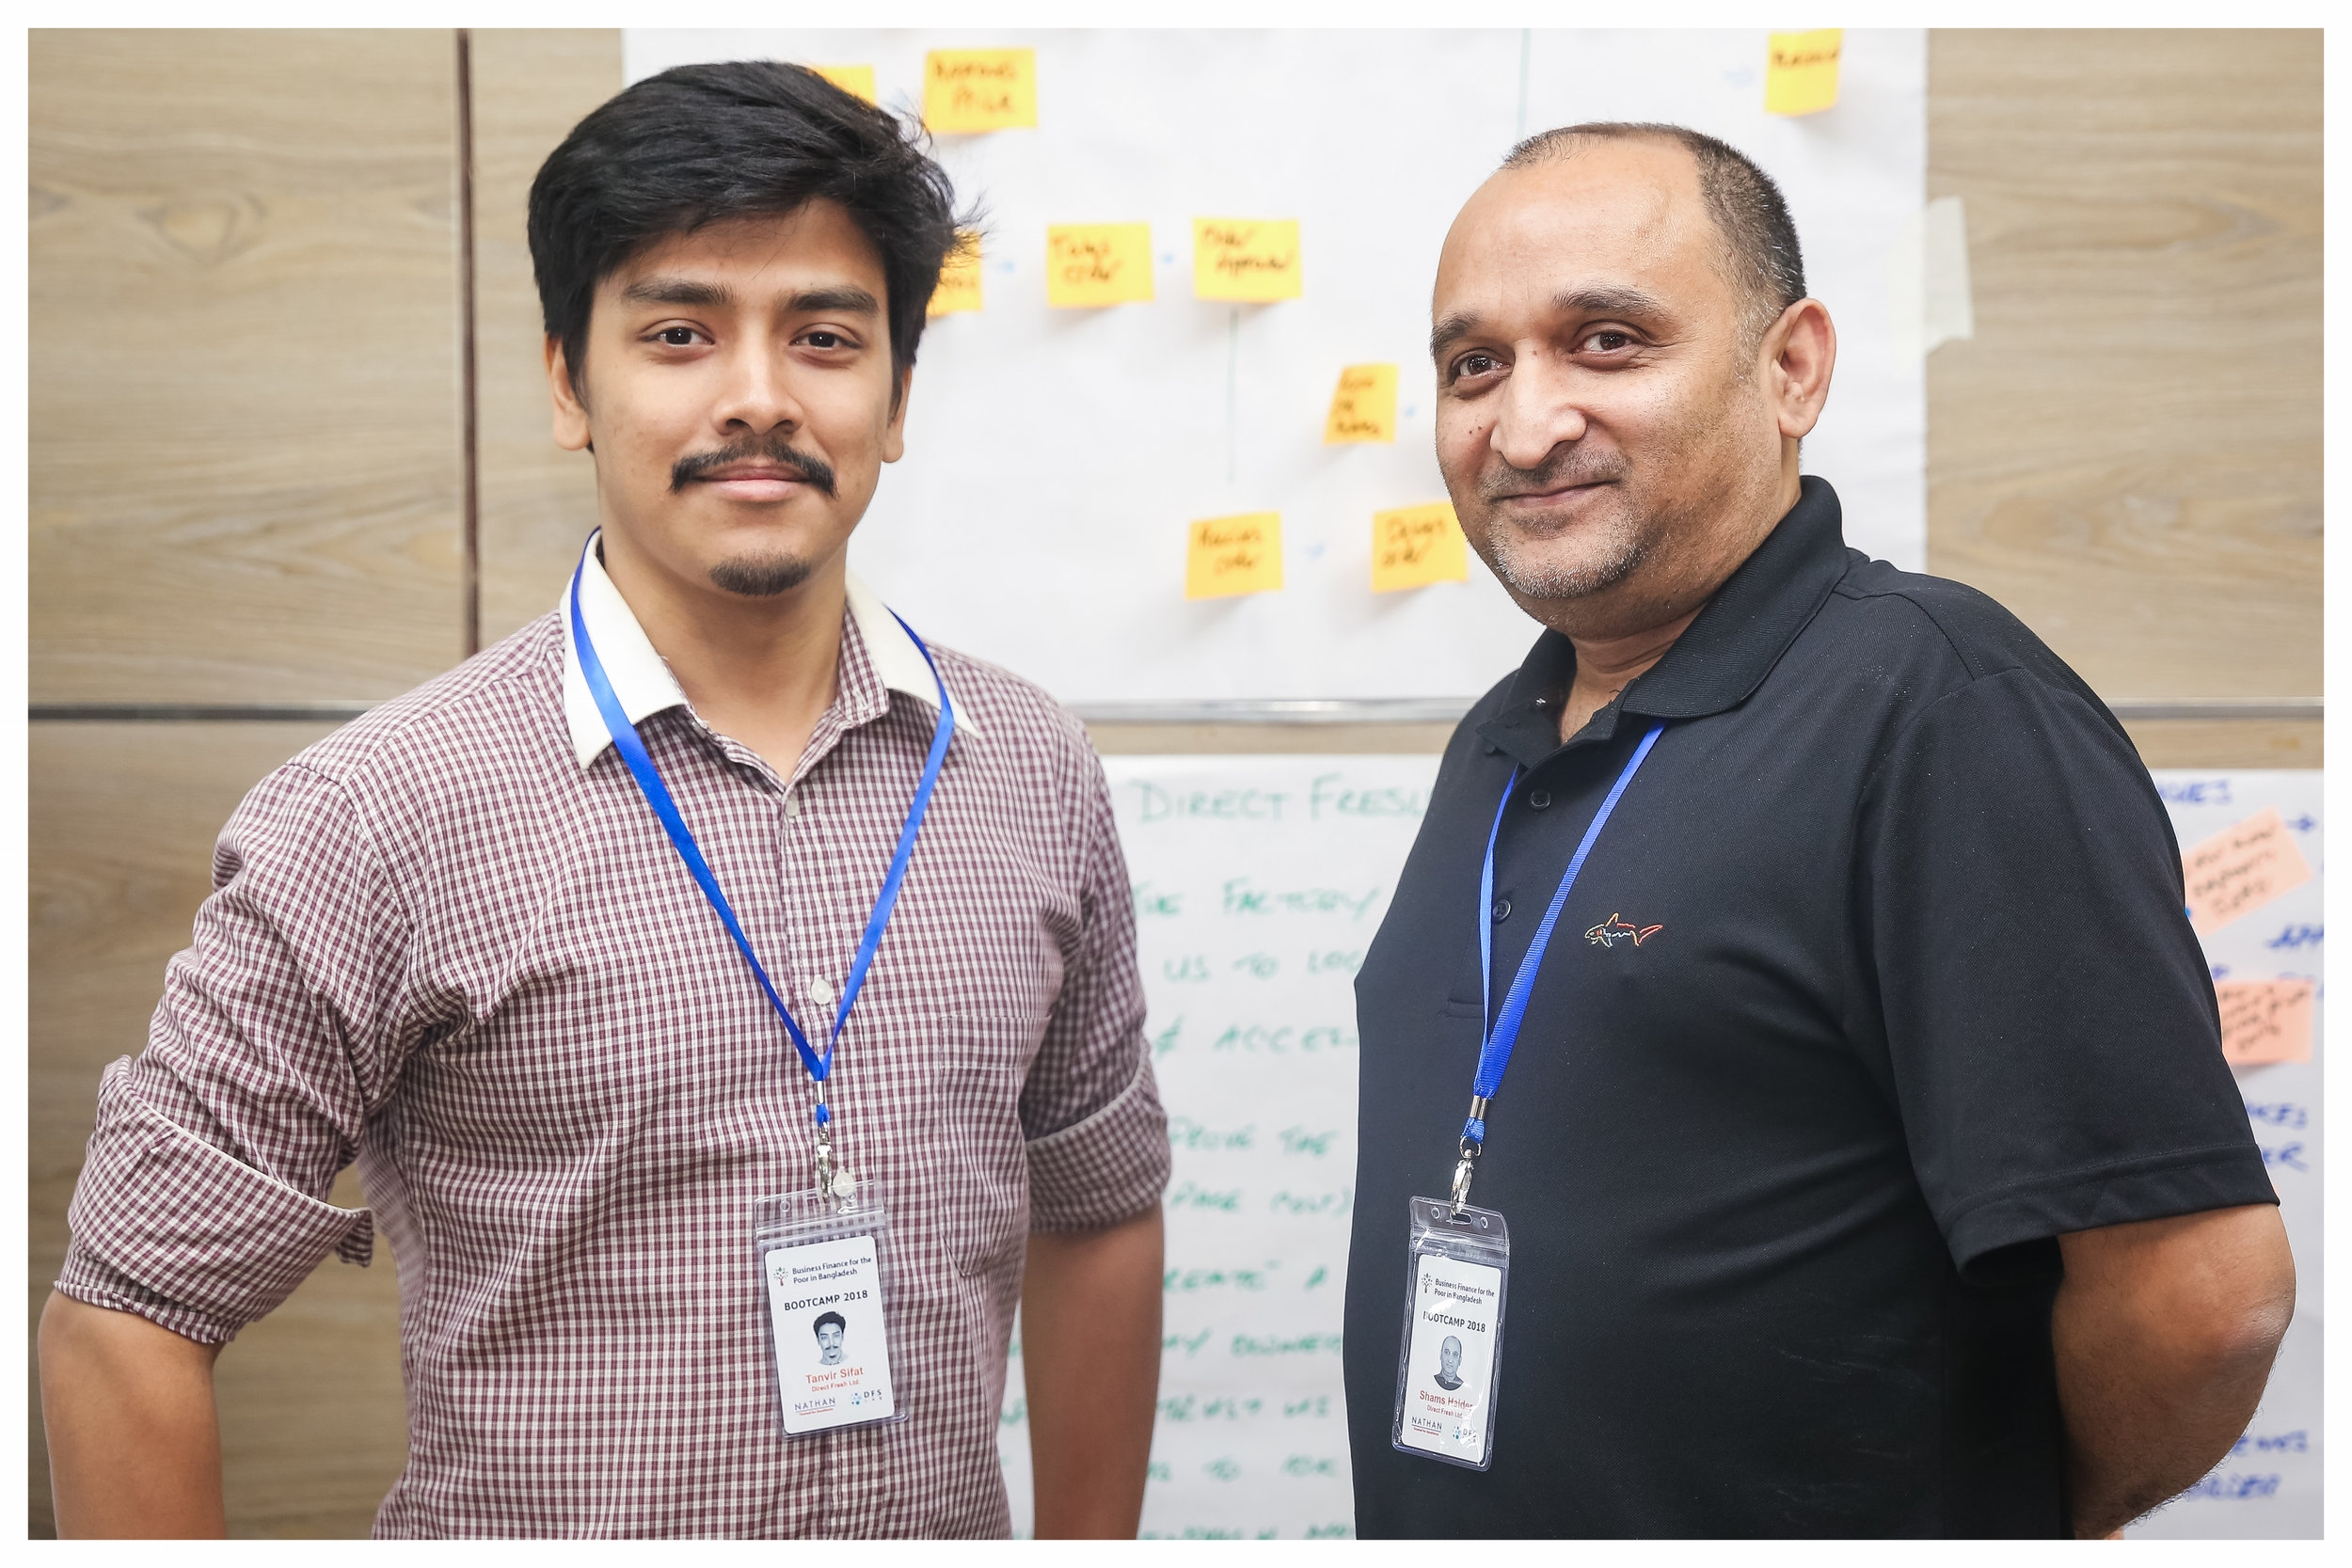 """Direct Fresh - """"The goal of our project is to cater to the basic commodity needs of workers of all factories. For now, we are providing them with basic food. We hope to expand in the future. The Bootcamp and entire sprint process has helped us clarify our vision in terms of the perfect strategy or roadmap for implementing the solution we came up with."""""""